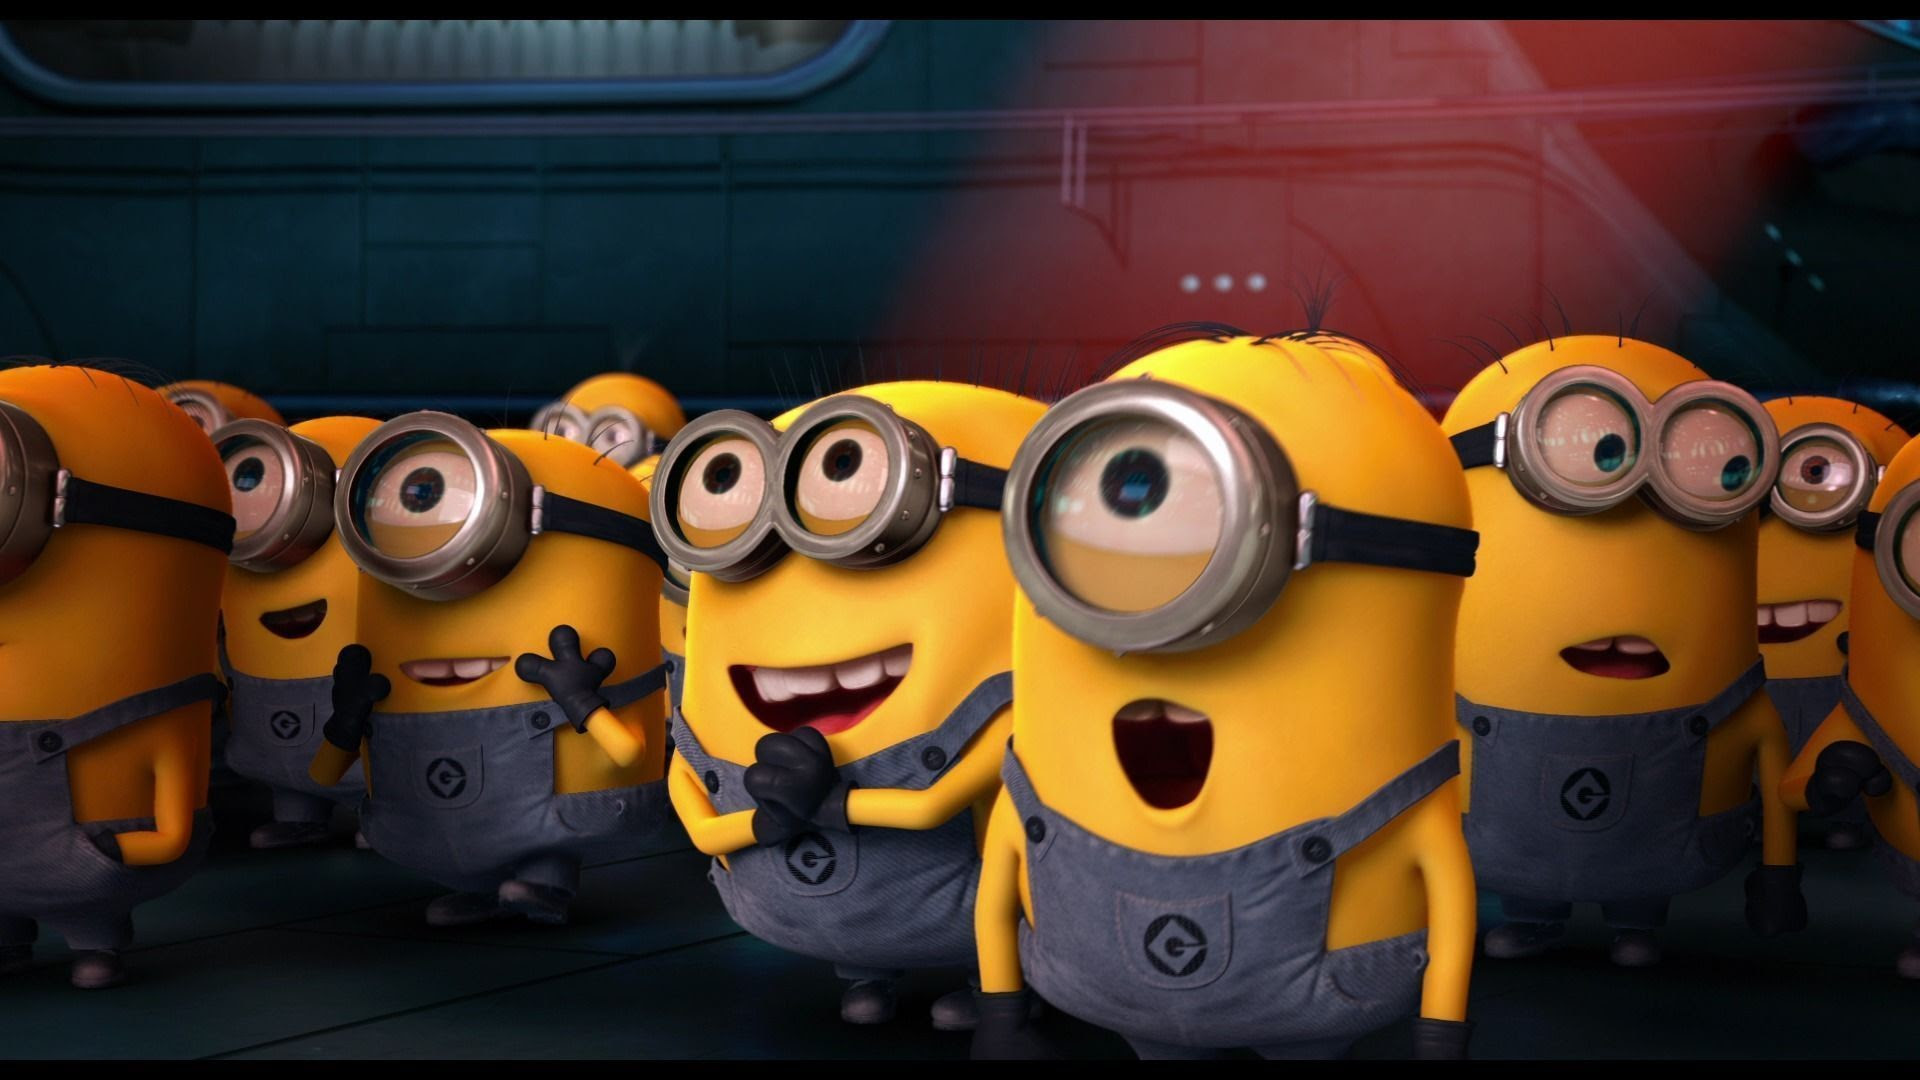 Minion Android Wallpaper 88 Images